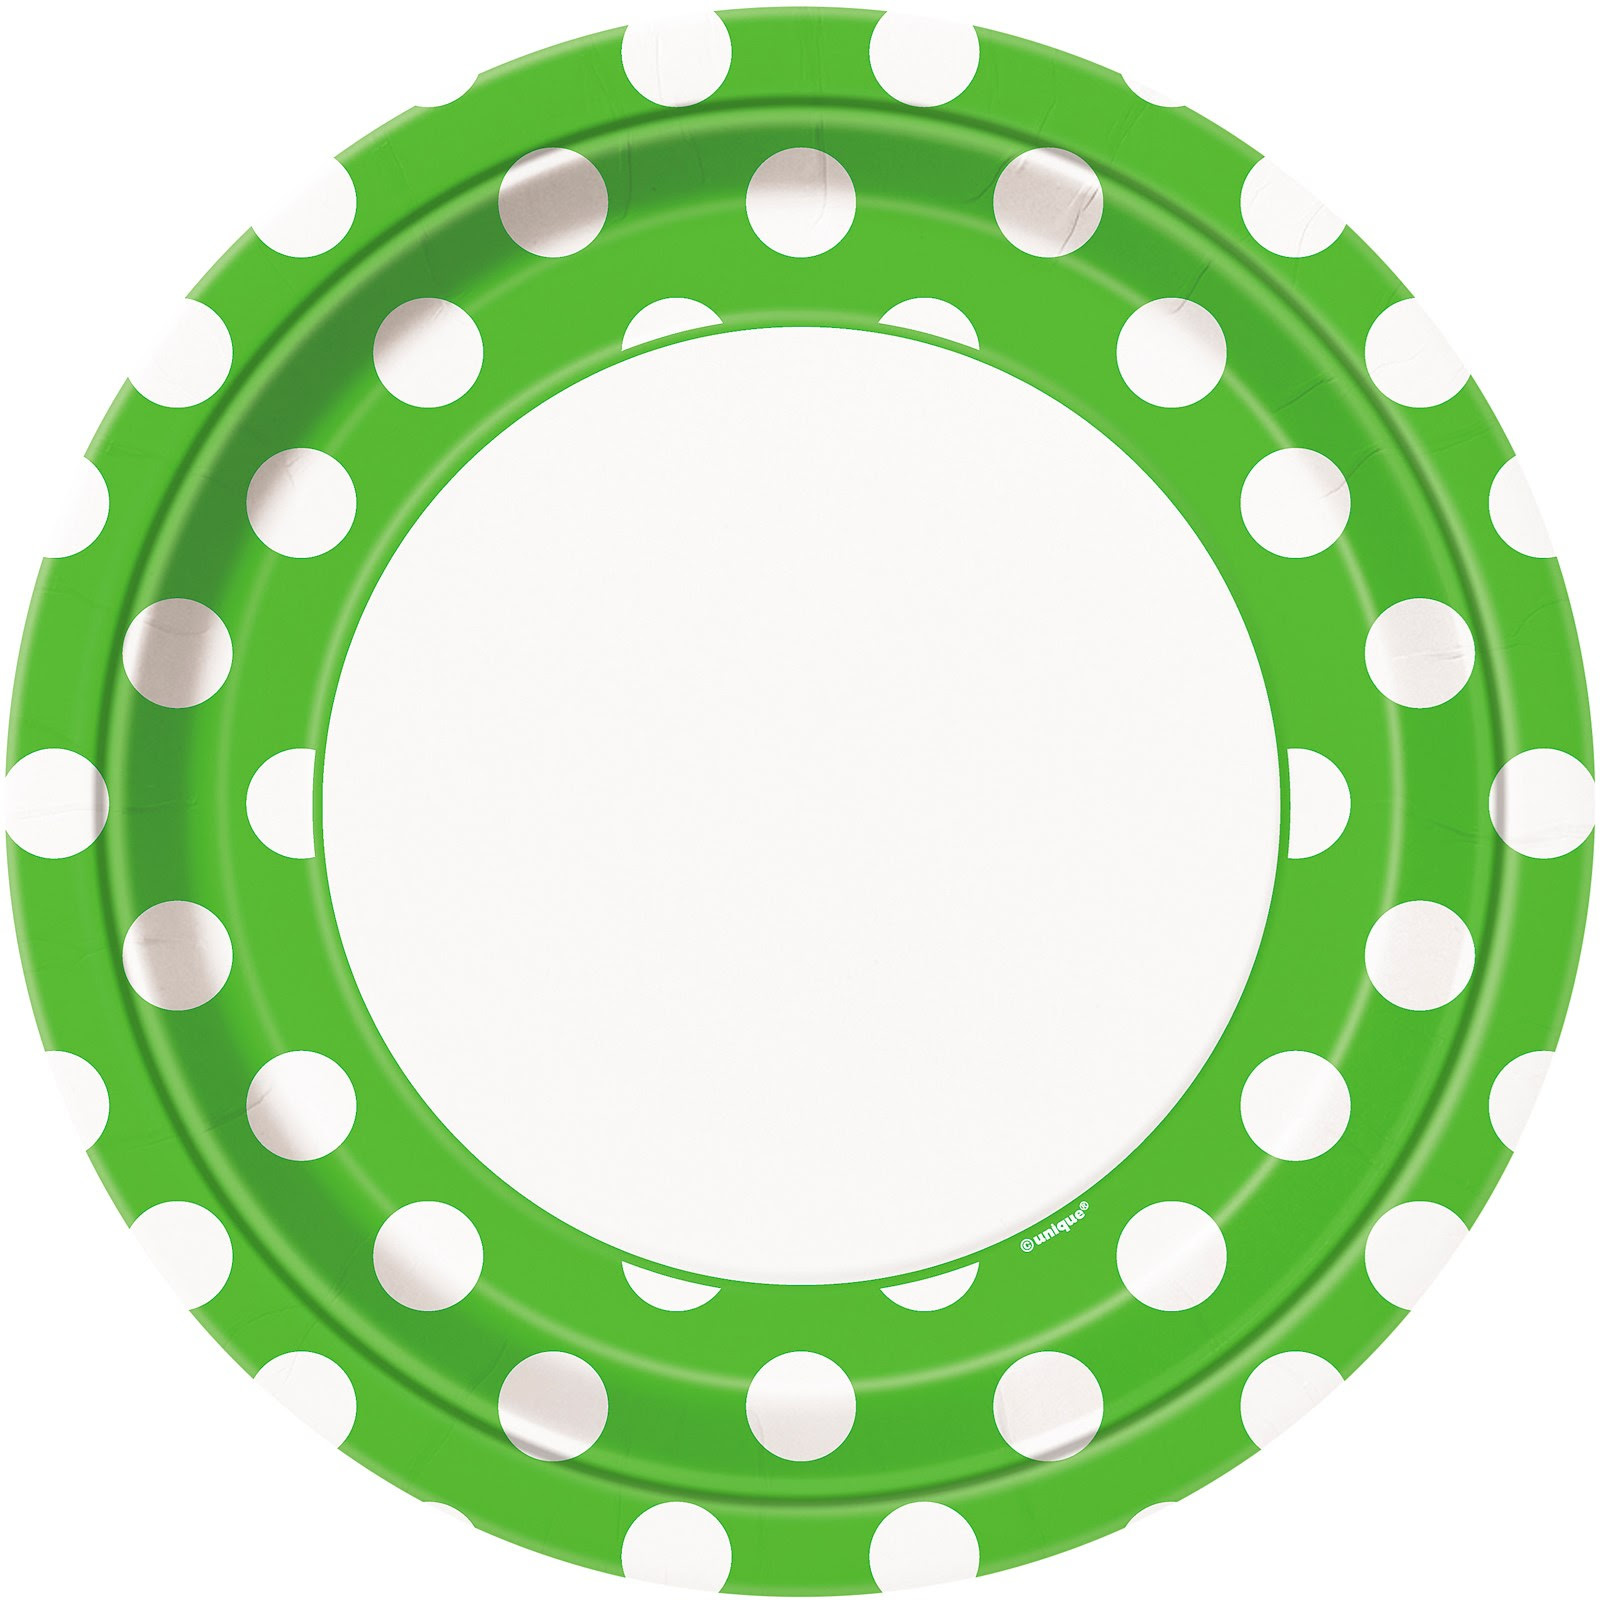 Green and White Polka Dot Plates